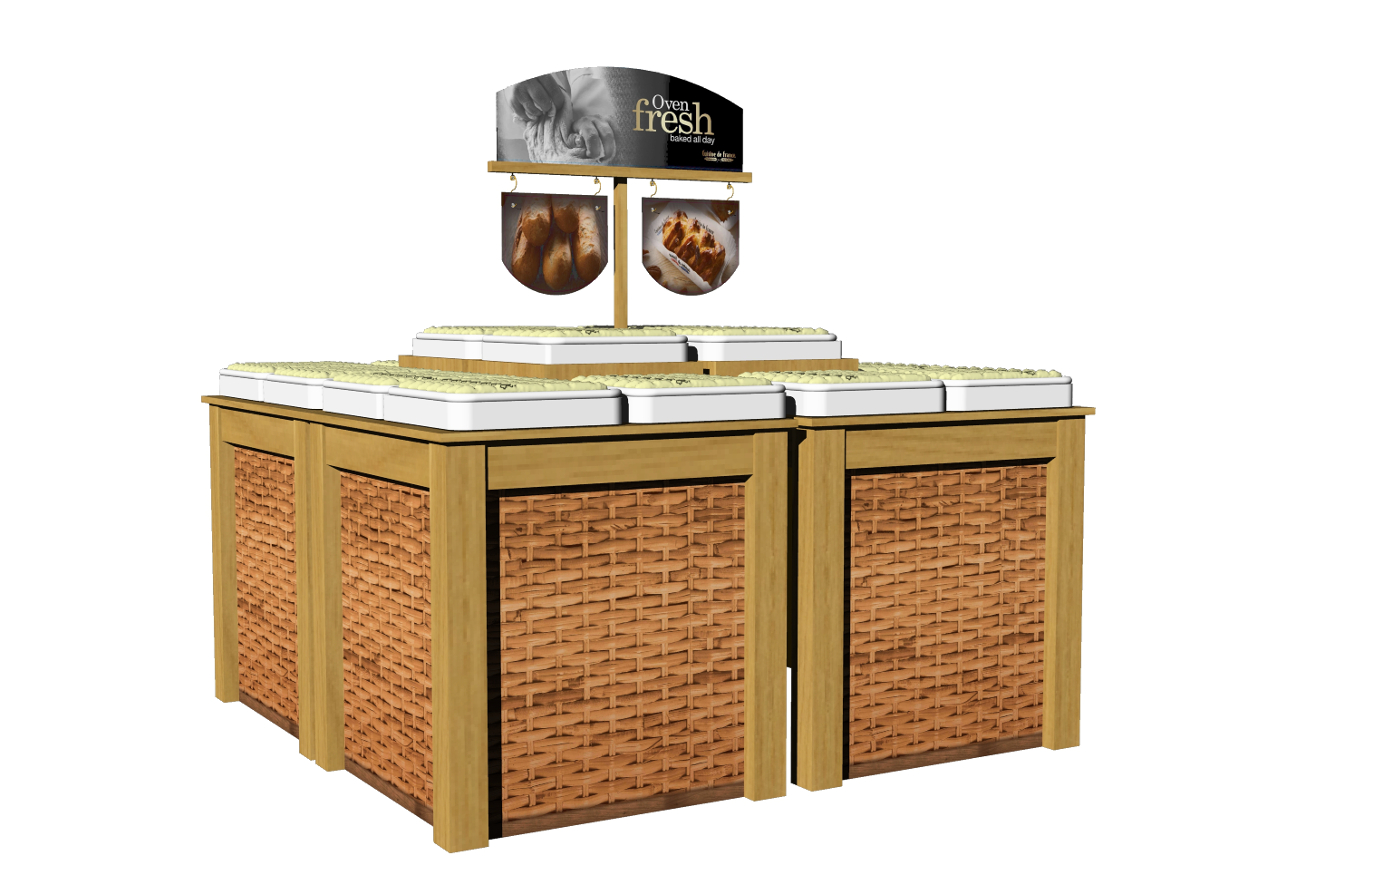 IBE Retail Food & Beverage Display Design - Aryzta Cuisine De France Bakery Display Design 6